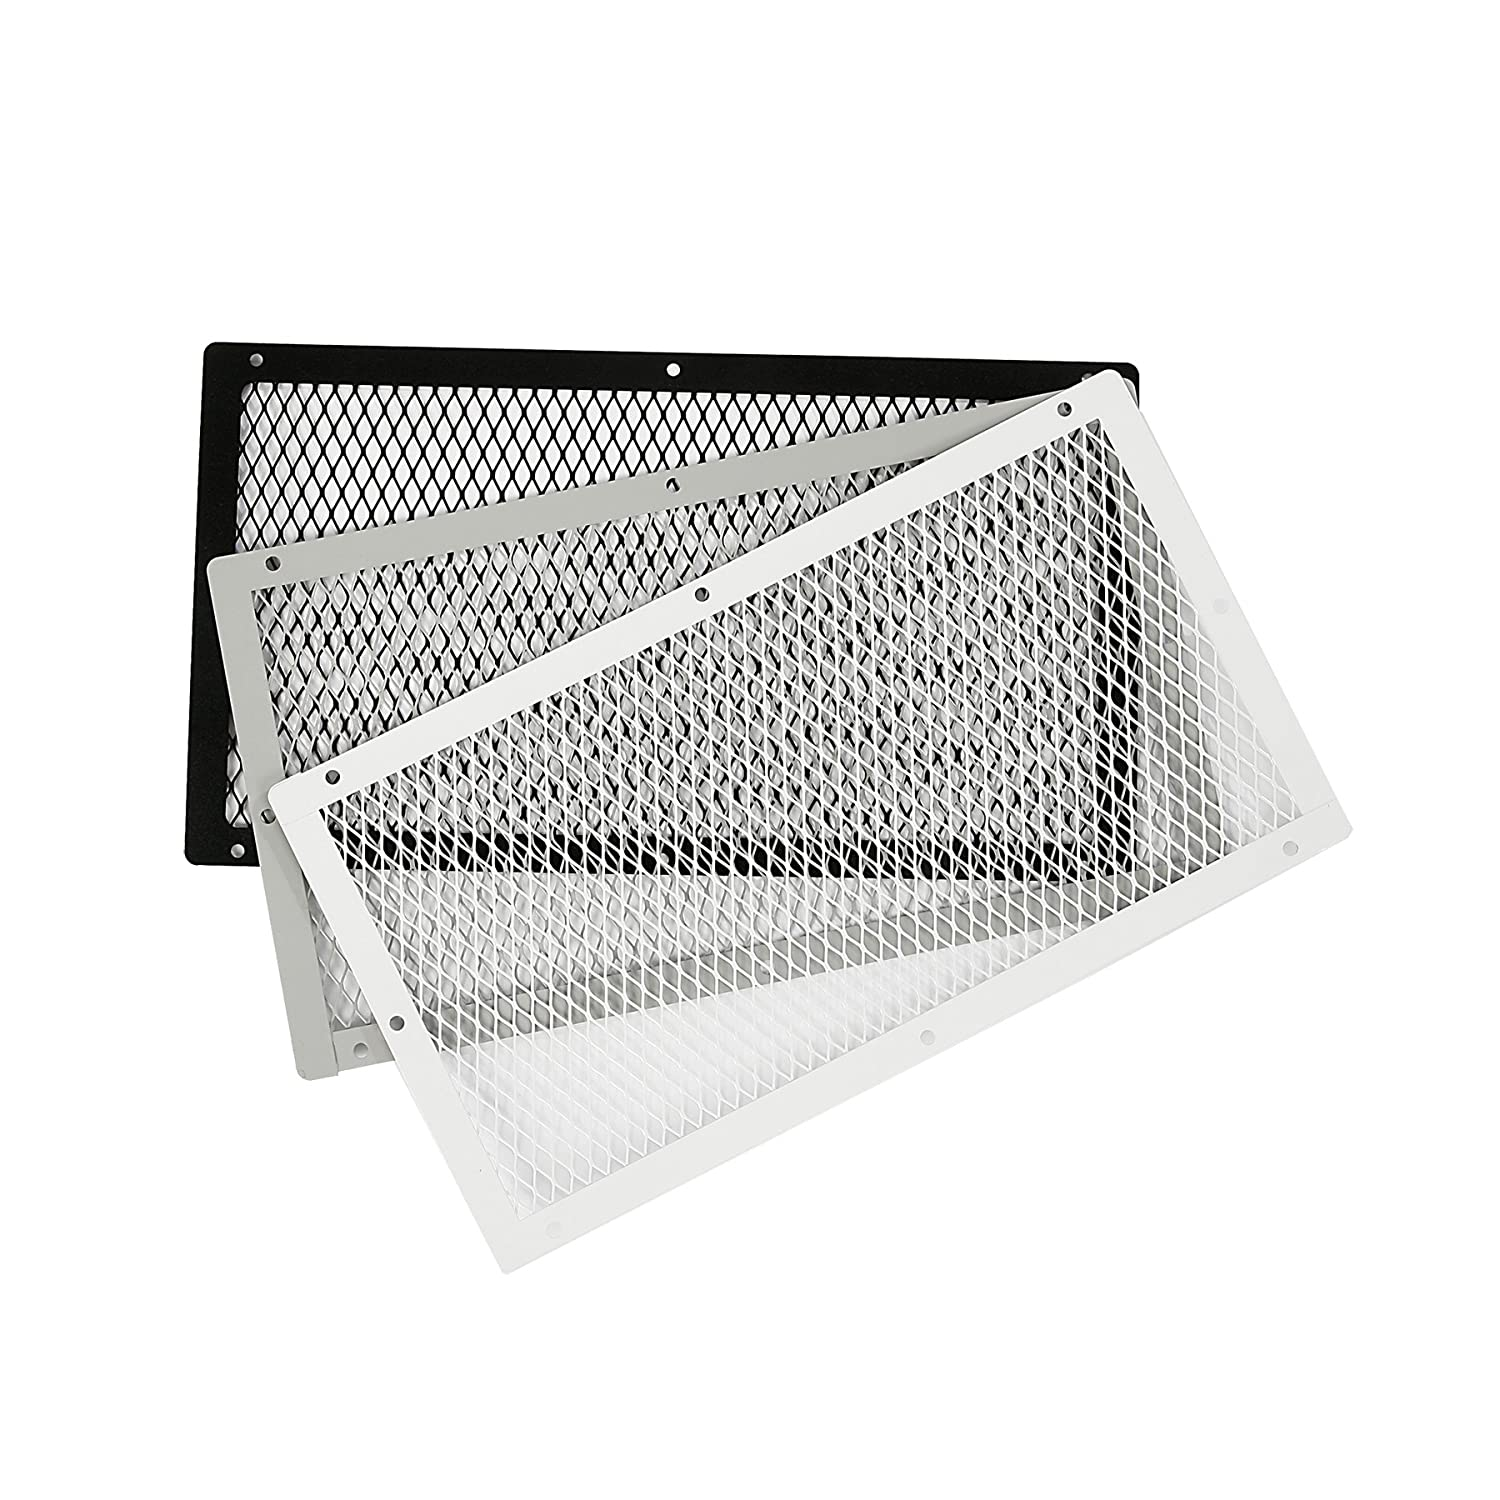 HY-C VG1018G-1B Galvanized Steel Foundation Vent Guard-Black Wildlife Exclusion Screen Size: 10Lx.25Wx18H